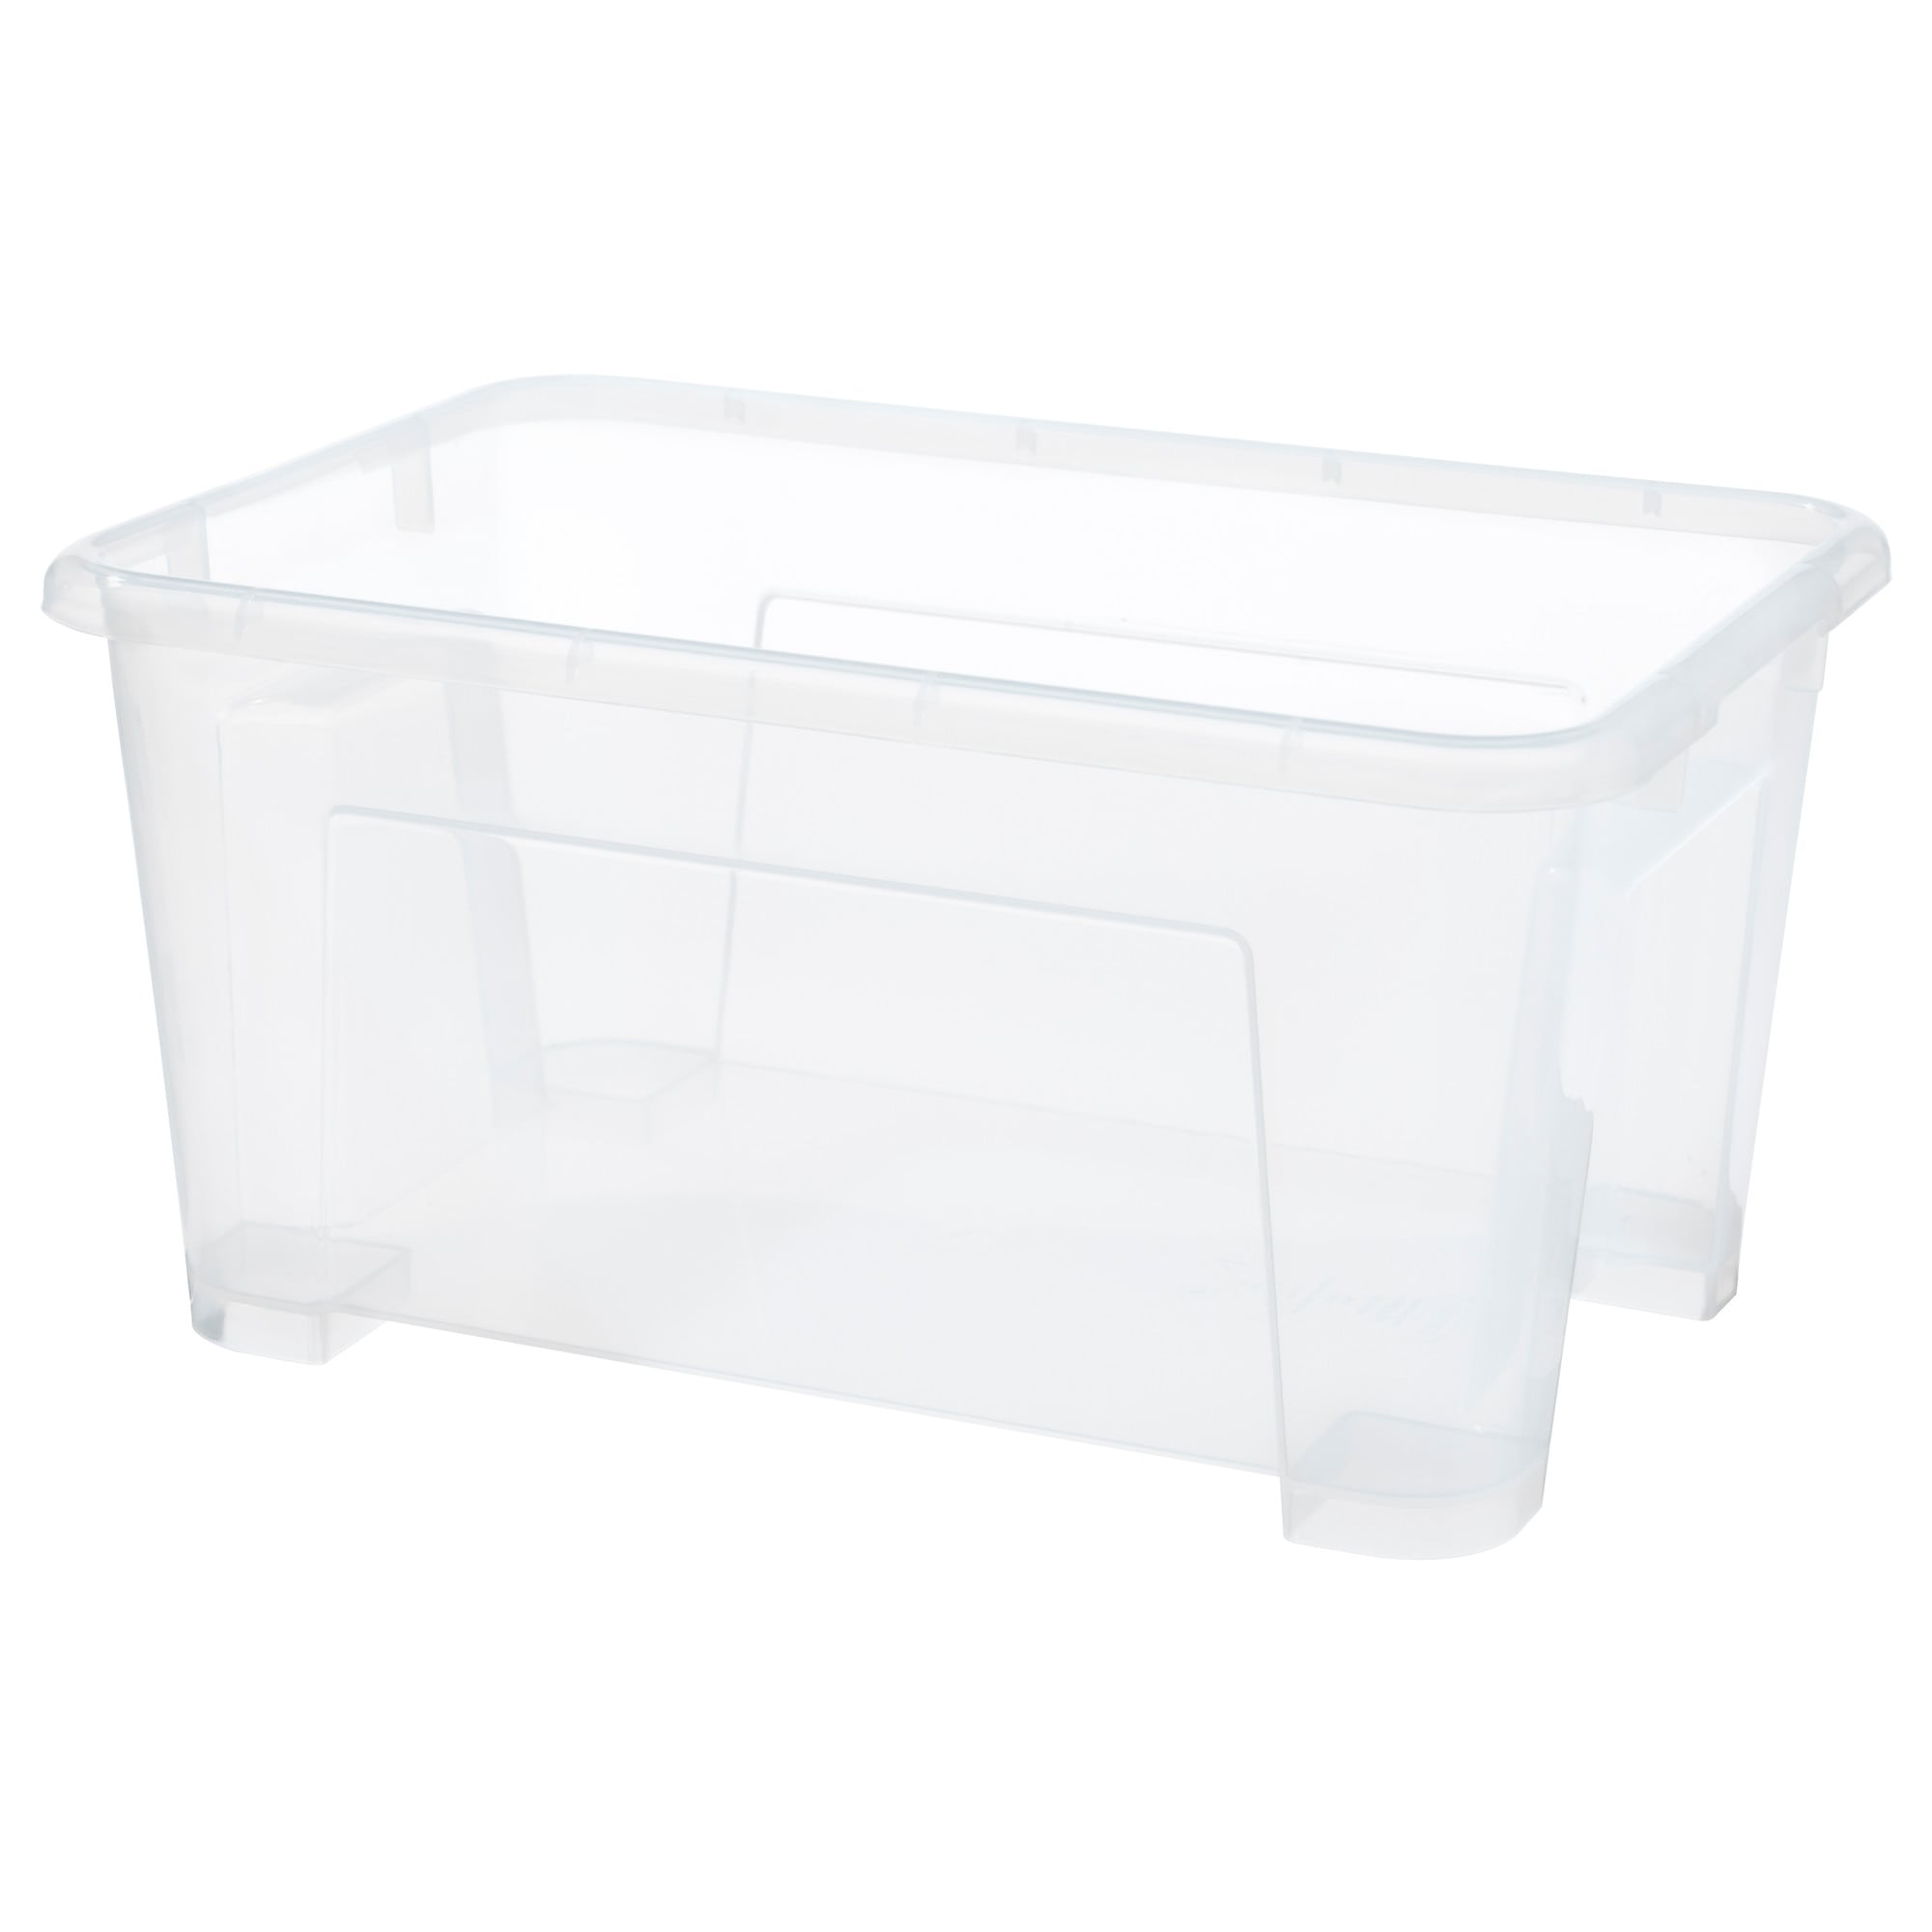 Ikea plastic containers